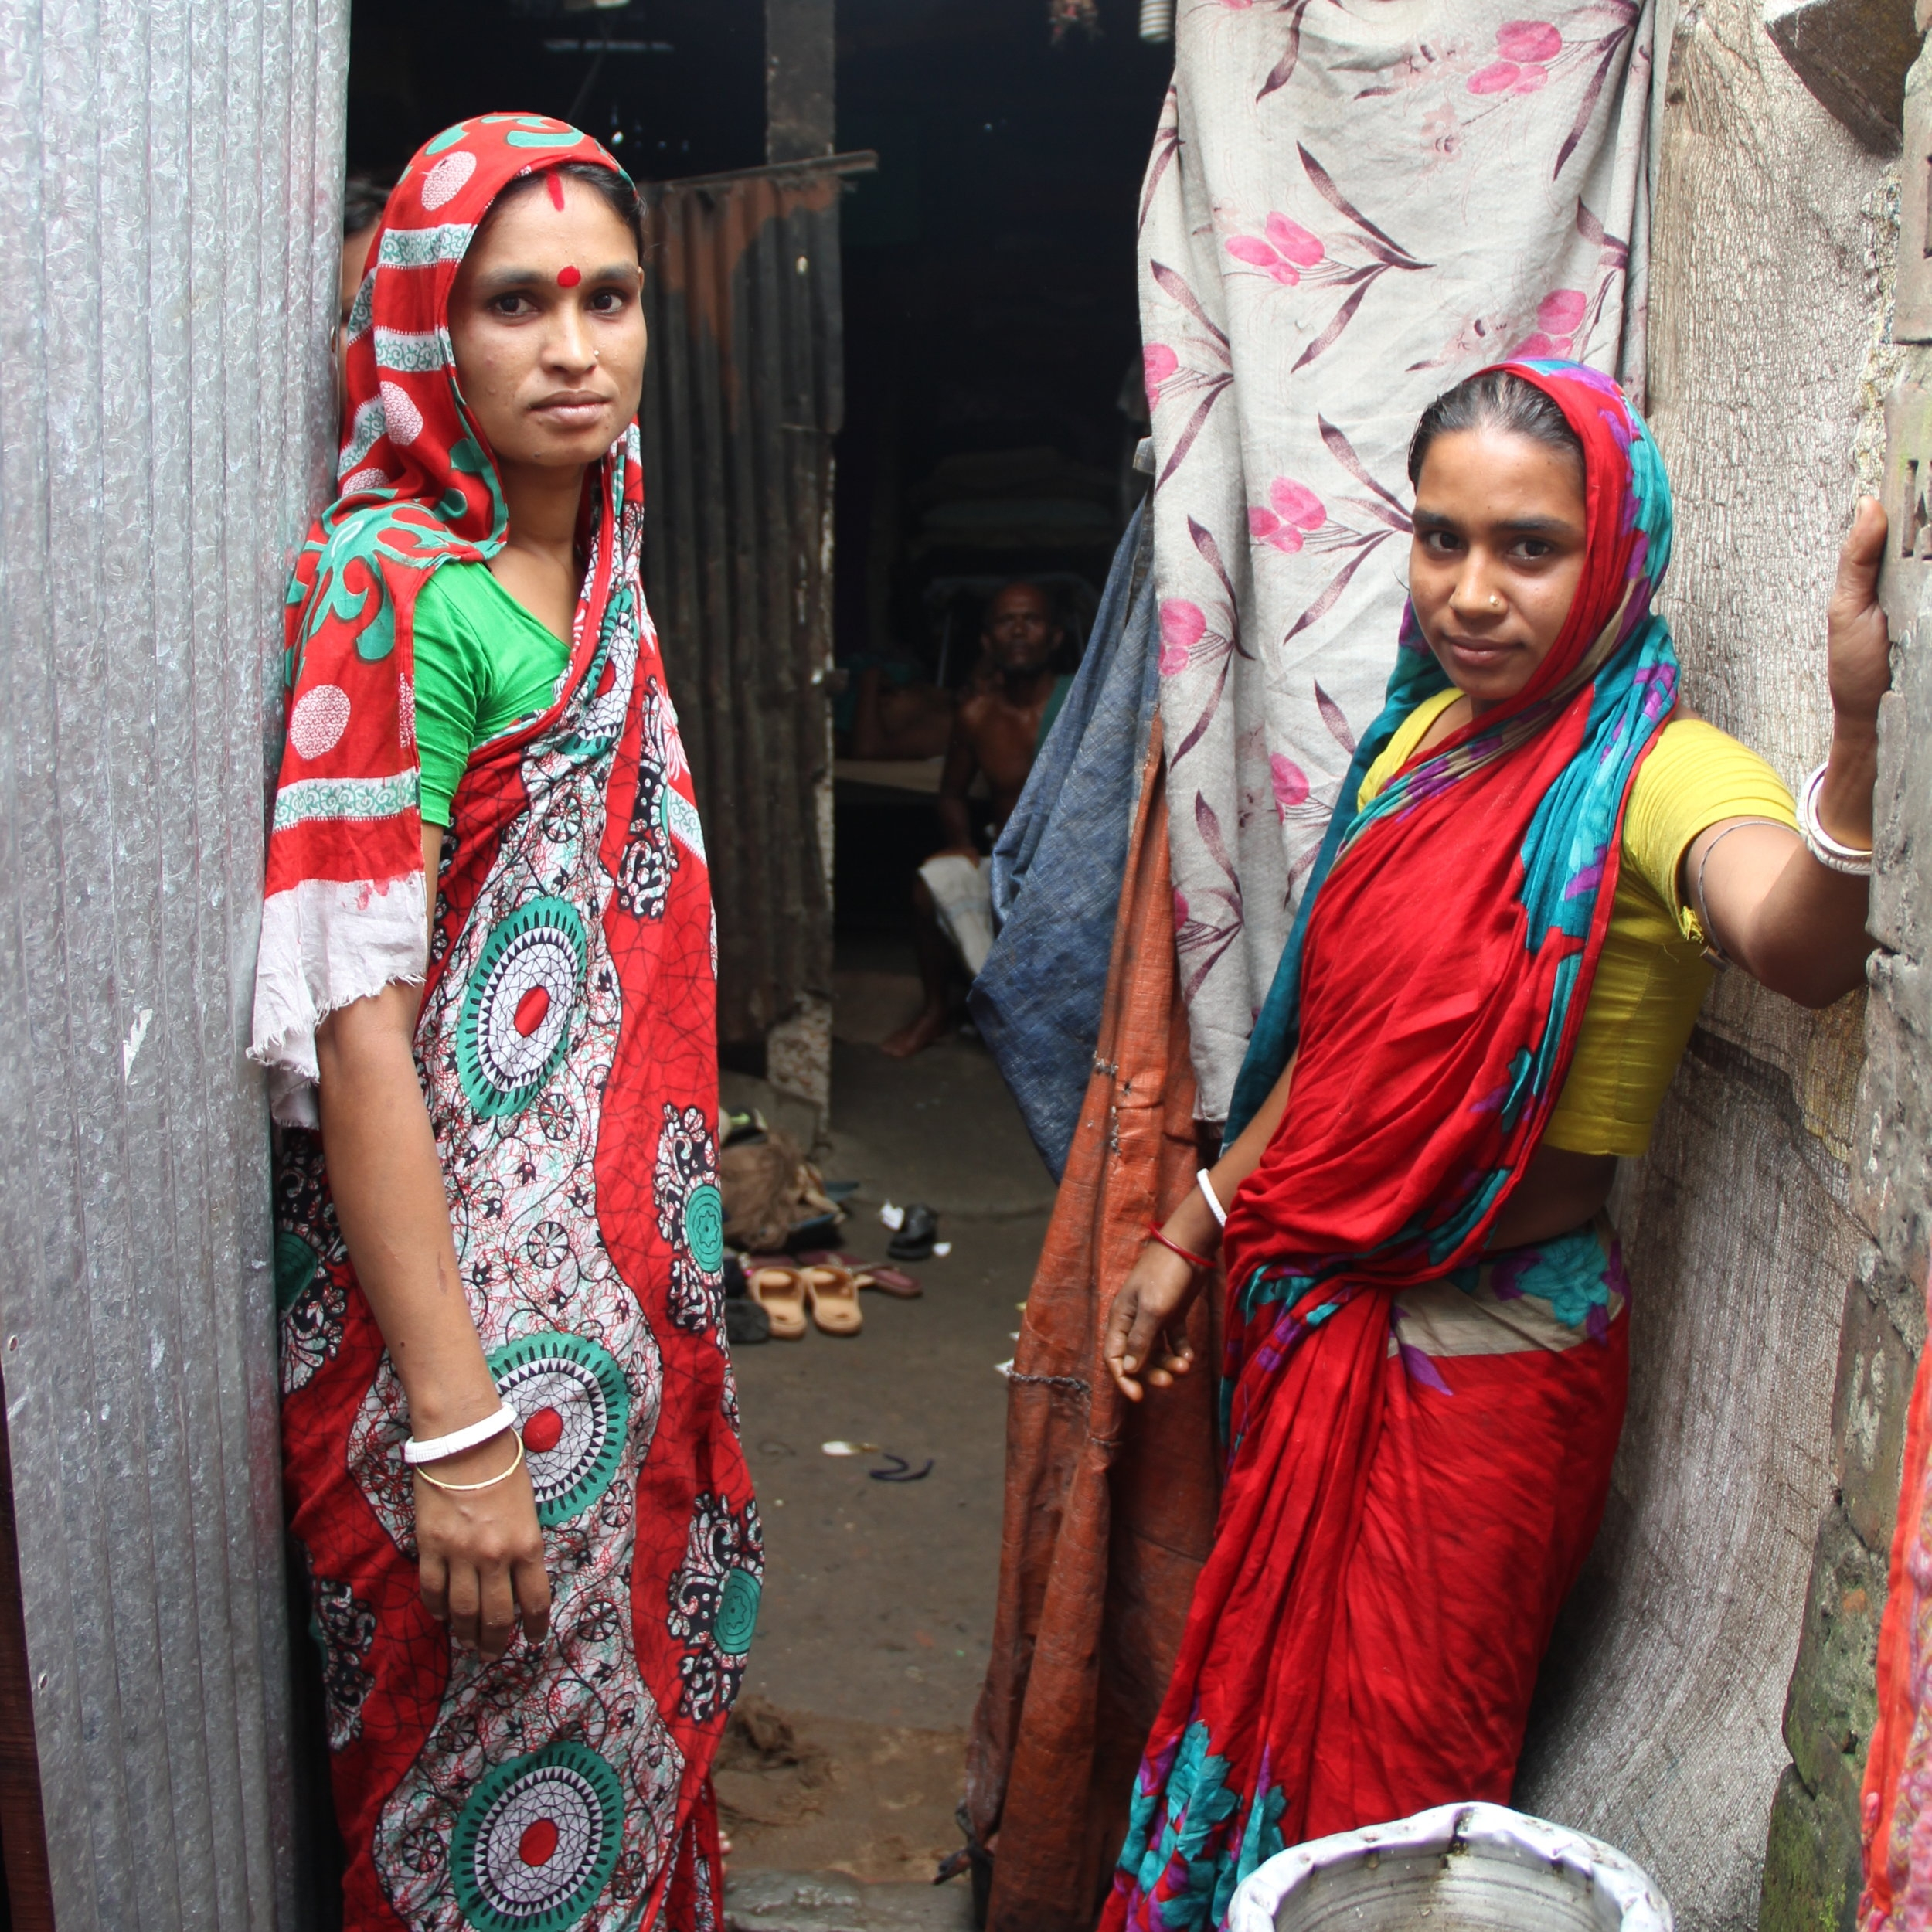 Housing Female Migrant Workers - Planning for the Expanding Female Workforce in Narayanganj, Bangladeshby Ciara Stein ( MUP & MLA I, '21)